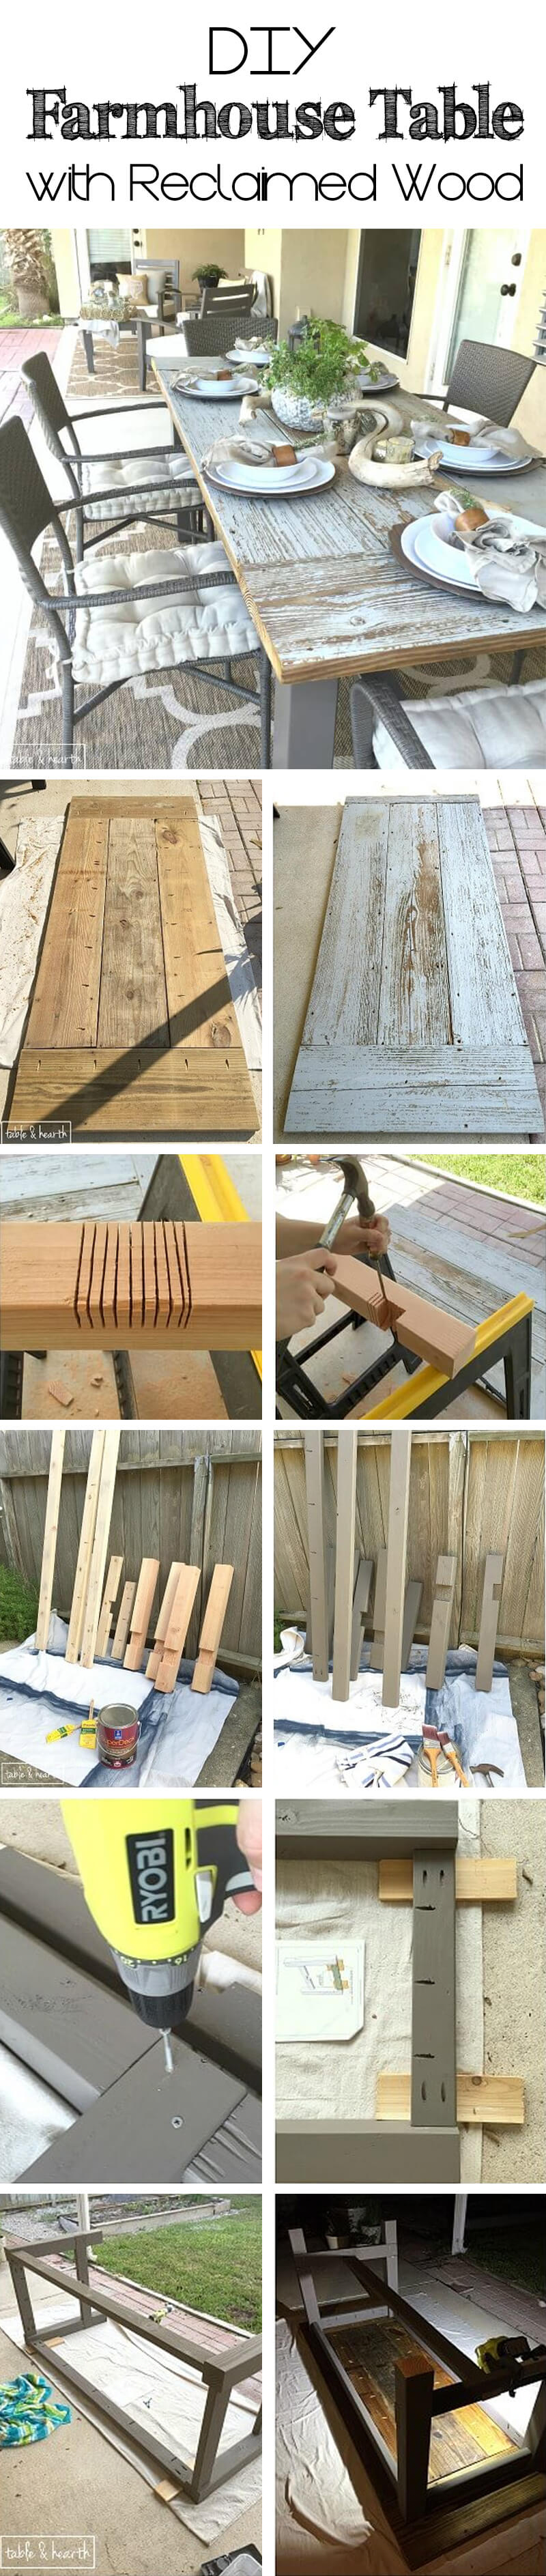 Rustic DIY Farmhouse Tables with Reclaimed Wood